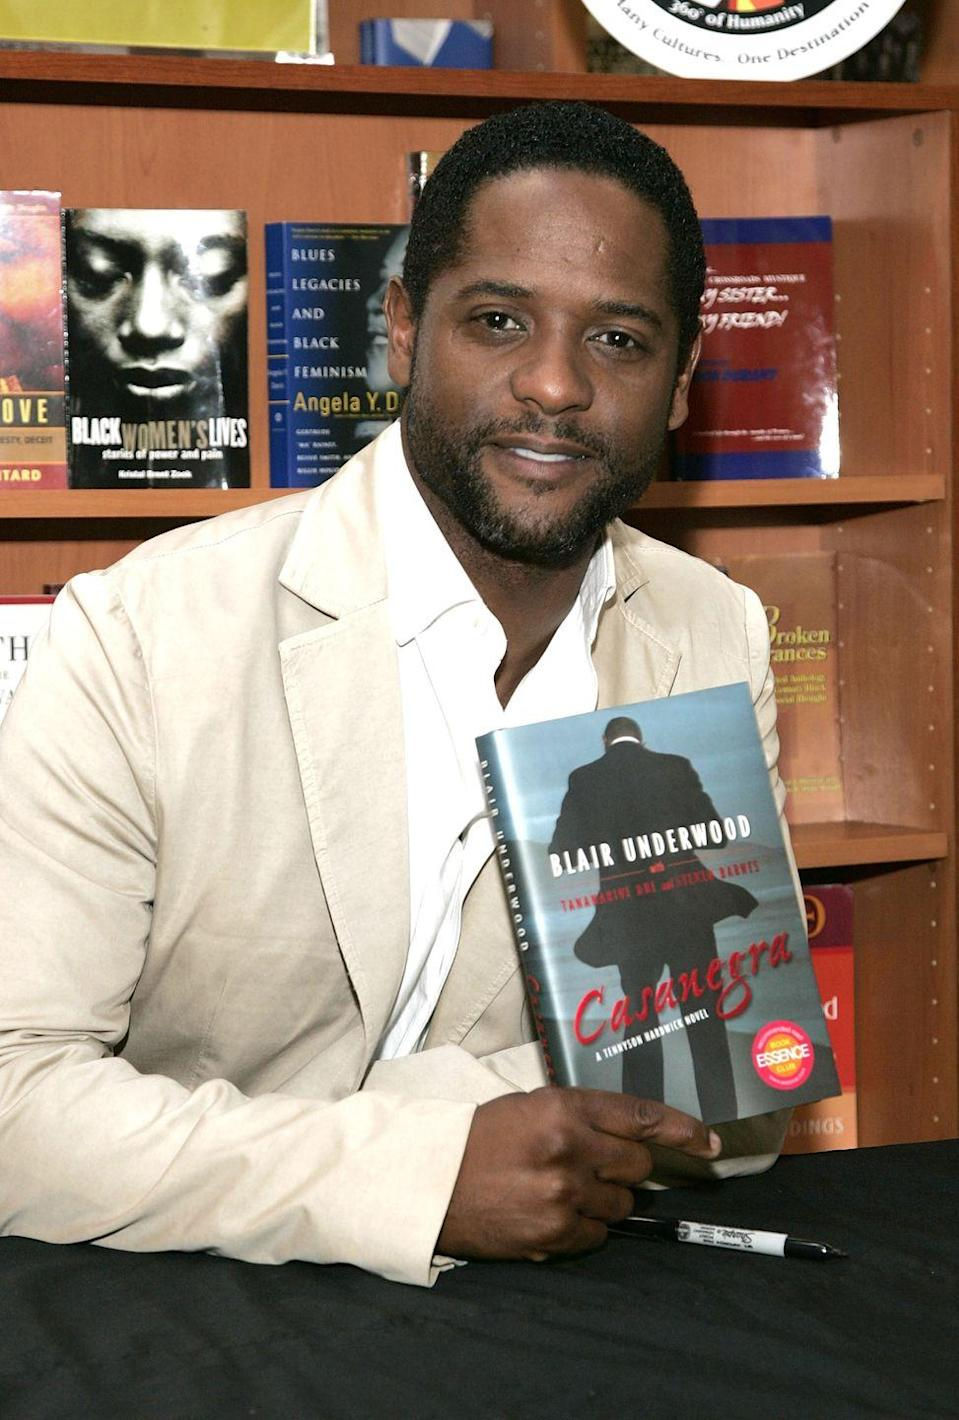 """<p>For those looking for a book about a sexy, former male escort turned amateur sleuth (and who isn't?), look no further than the Tennyson Hardwick series by Blair Underwood. The <em>L.A. Law</em> star set the mystery novels against the backdrop of Hollywood, hip-hop, violence, and betrayal that results in an erotic, noir read.</p><p><em>Casanegra</em>, the title a tongue-in-cheek reference to <em>Casablanca,</em> according to the <em><a href=""""https://www.latimes.com/archives/la-xpm-2007-aug-14-et-underwood14-story.html"""" rel=""""nofollow noopener"""" target=""""_blank"""" data-ylk=""""slk:Los Angeles Times"""" class=""""link rapid-noclick-resp"""">Los Angeles Times</a></em>, is the first novel to feature Hardwick (there are now four), and Blair told the paper that he hopes there is a <em>Casanegra</em> movie one day. Us too, Blair. Us, too. </p><p><a class=""""link rapid-noclick-resp"""" href=""""https://www.amazon.com/Casanegra-Blair-Underwood/dp/0743287312/ref=sr_1_4?crid=269AKXI4931HP&dchild=1&keywords=blair+underwood+books&qid=1599799930&s=books&sprefix=blair+under%2Cstripbooks%2C162&sr=1-4&tag=syn-yahoo-20&ascsubtag=%5Bartid%7C2140.g.33987725%5Bsrc%7Cyahoo-us"""" rel=""""nofollow noopener"""" target=""""_blank"""" data-ylk=""""slk:Buy the Book"""">Buy the Book</a></p>"""